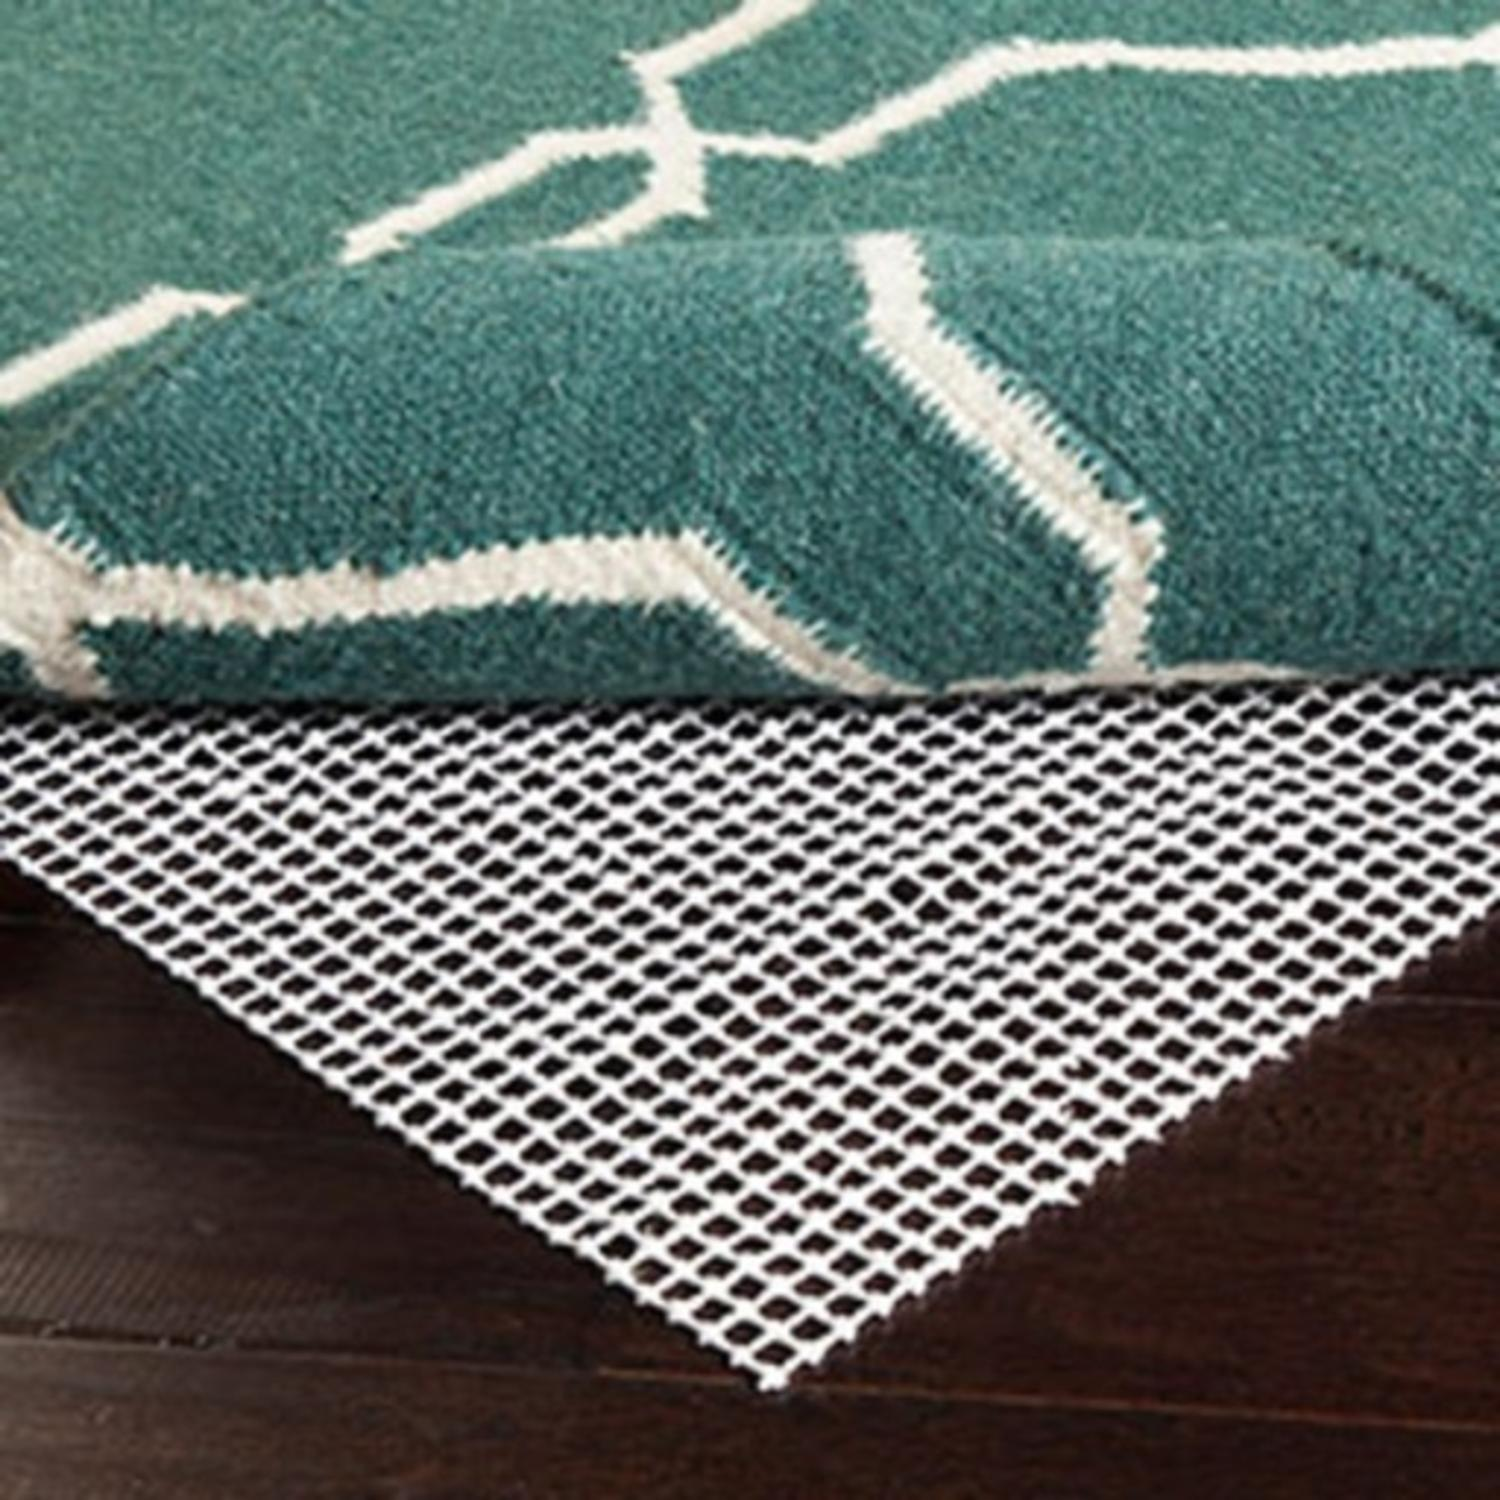 Standard Slip Resistant Liner for a 3' x 5' Area Throw Rug